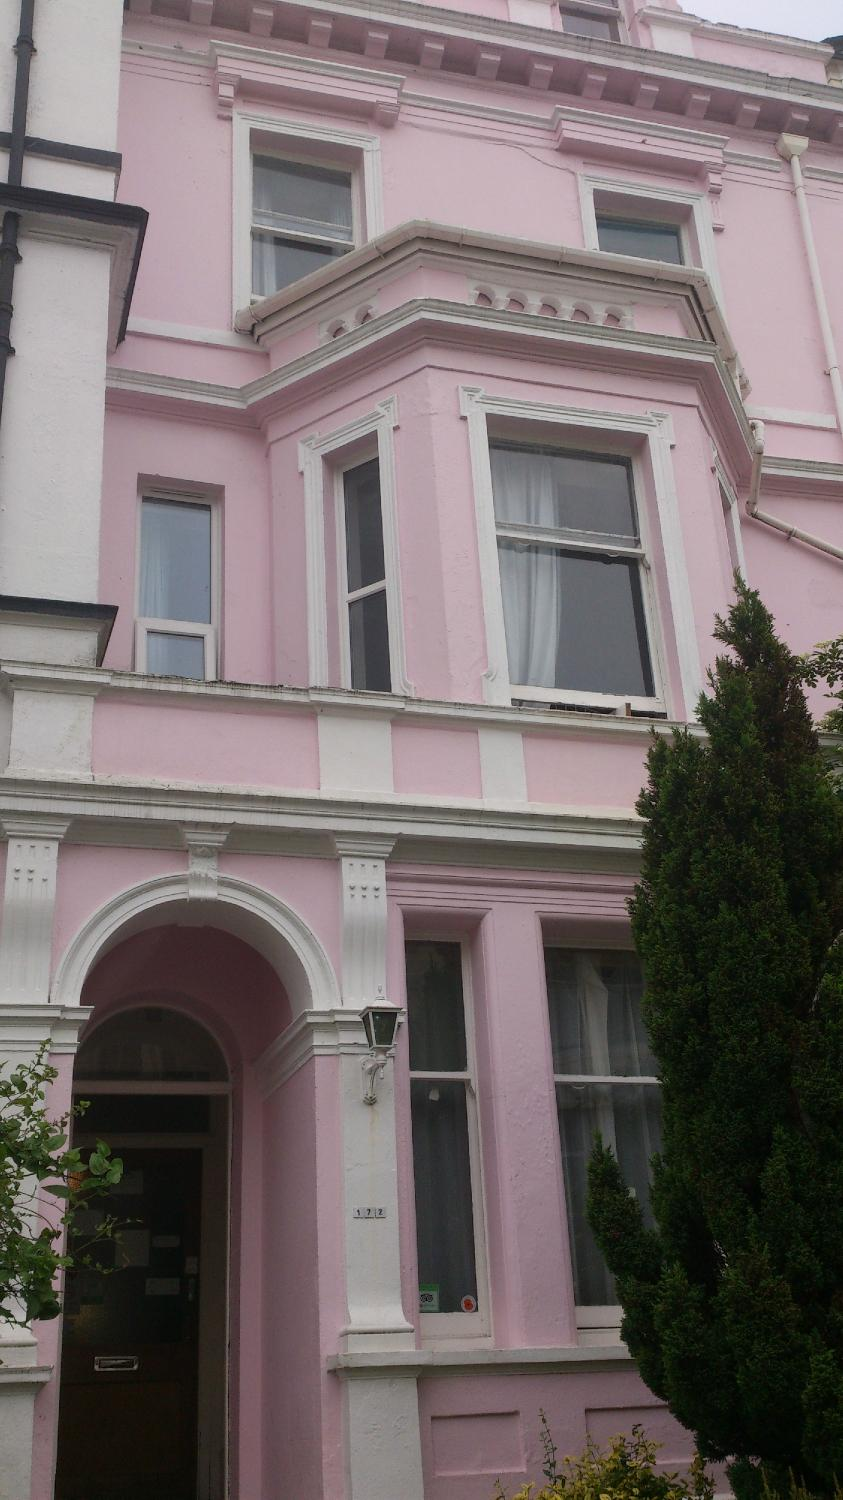 Plymouth Backpackers Hotel